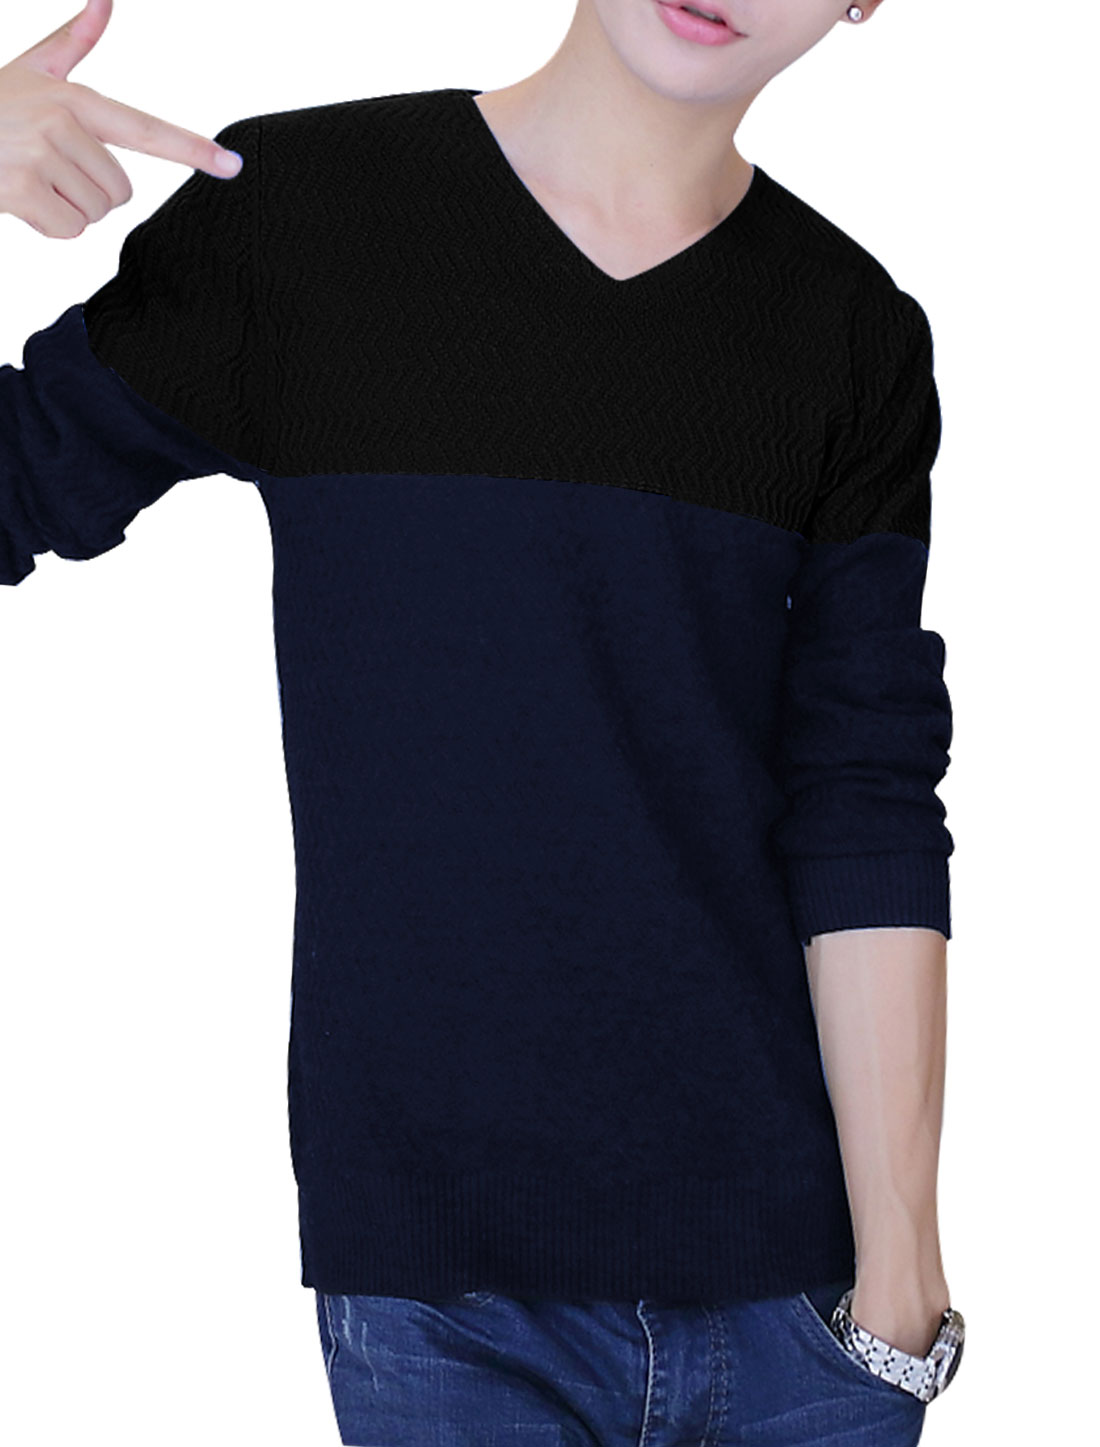 Men V Neck Slipover Color Block Casual Knit Shirt Black Navy Blue S